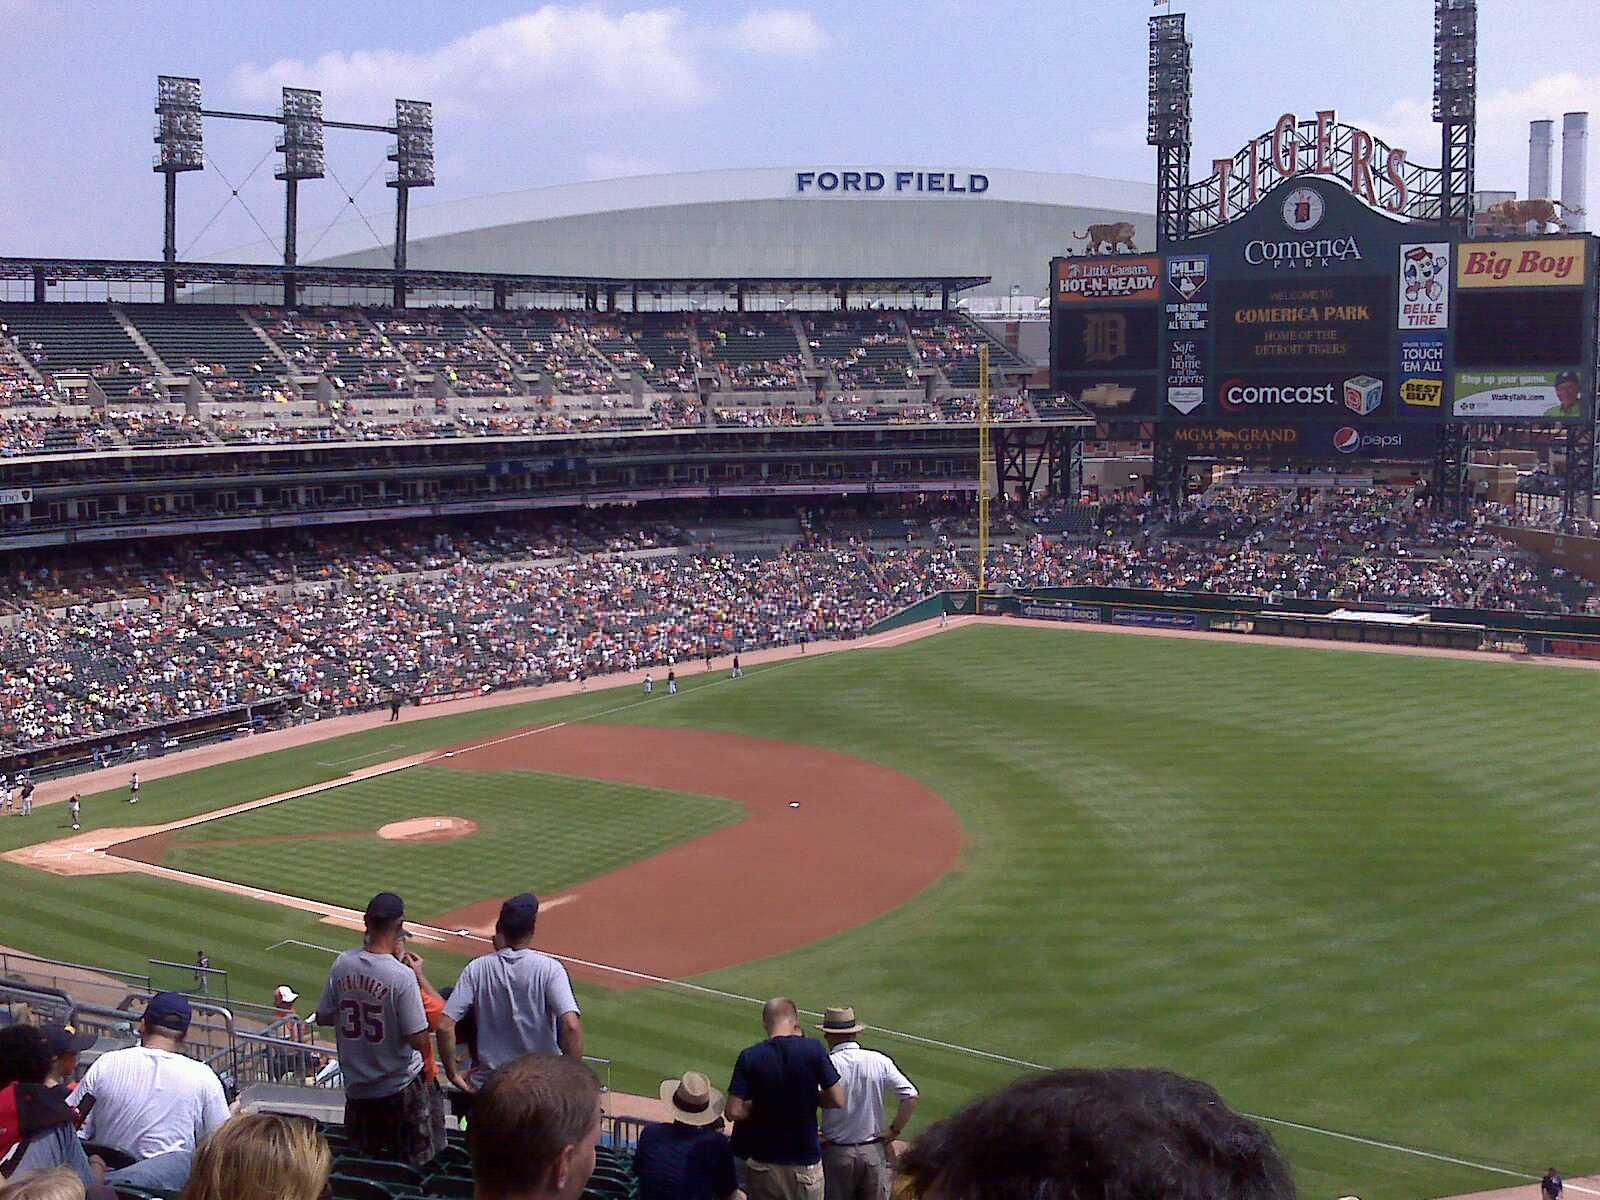 Comerica Park Section 215 Row 3 Seat 8